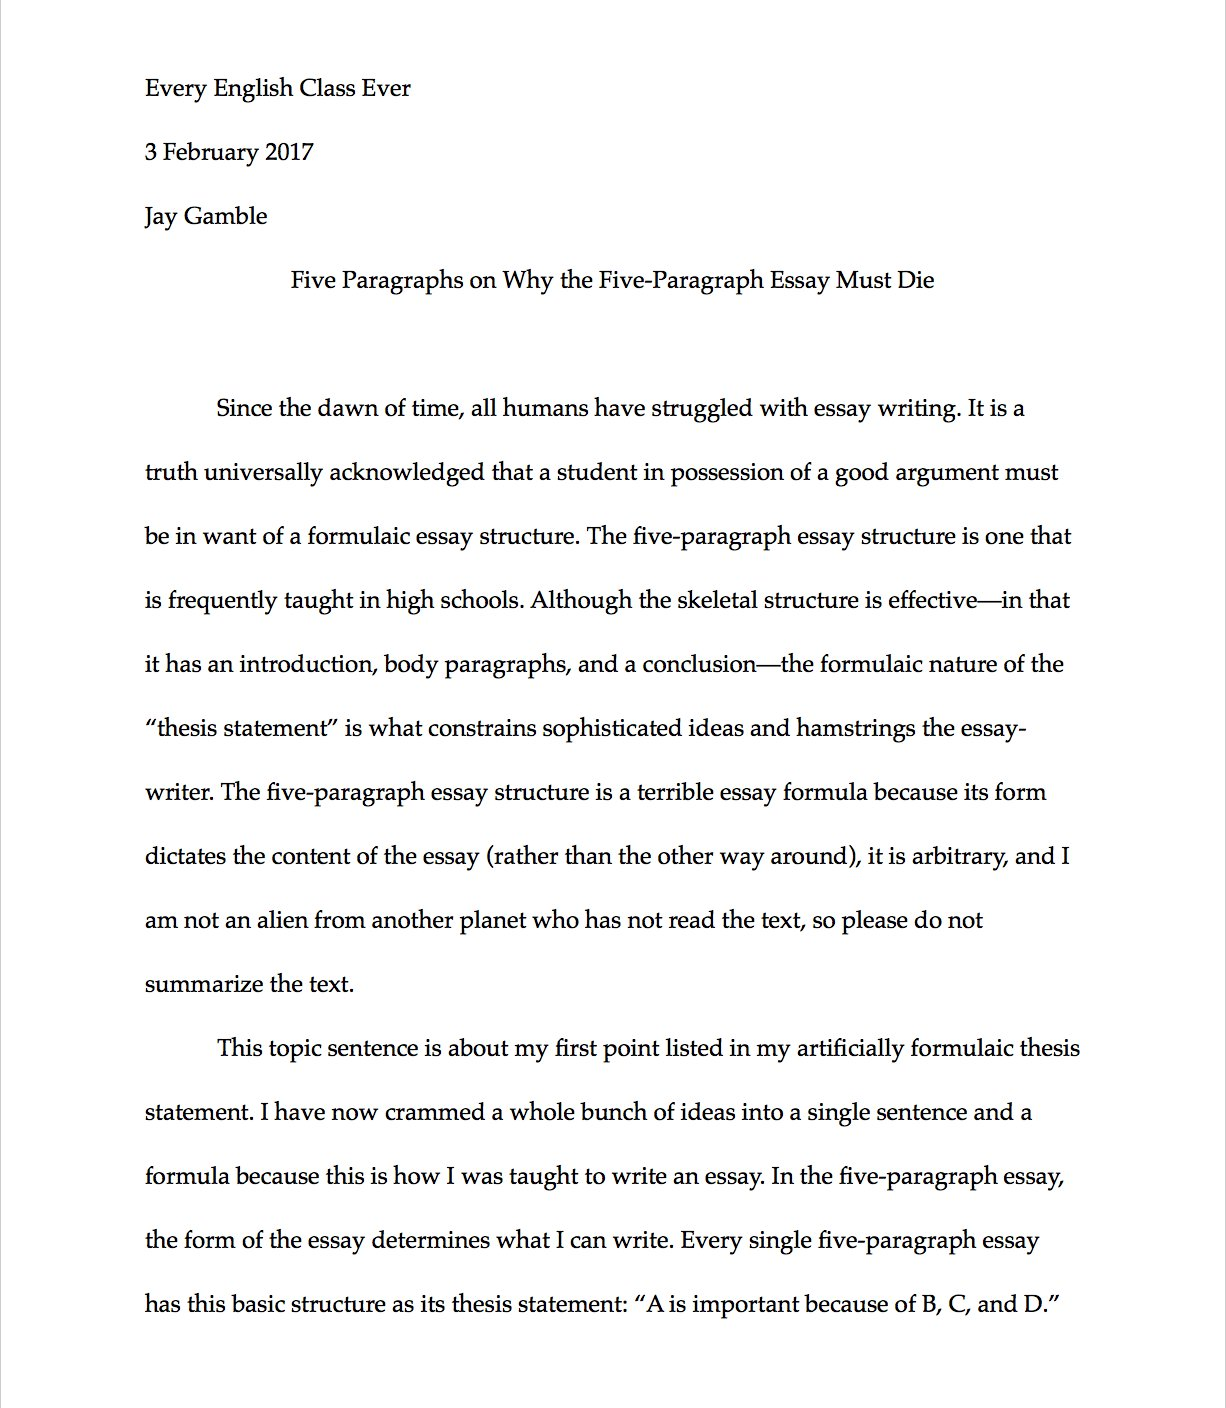 jay guevara general apathy on why the five paragraph  jay guevara general apathy on why the five paragraph essay must die in five paragraphs thanks to likelyjanlukas for the idea